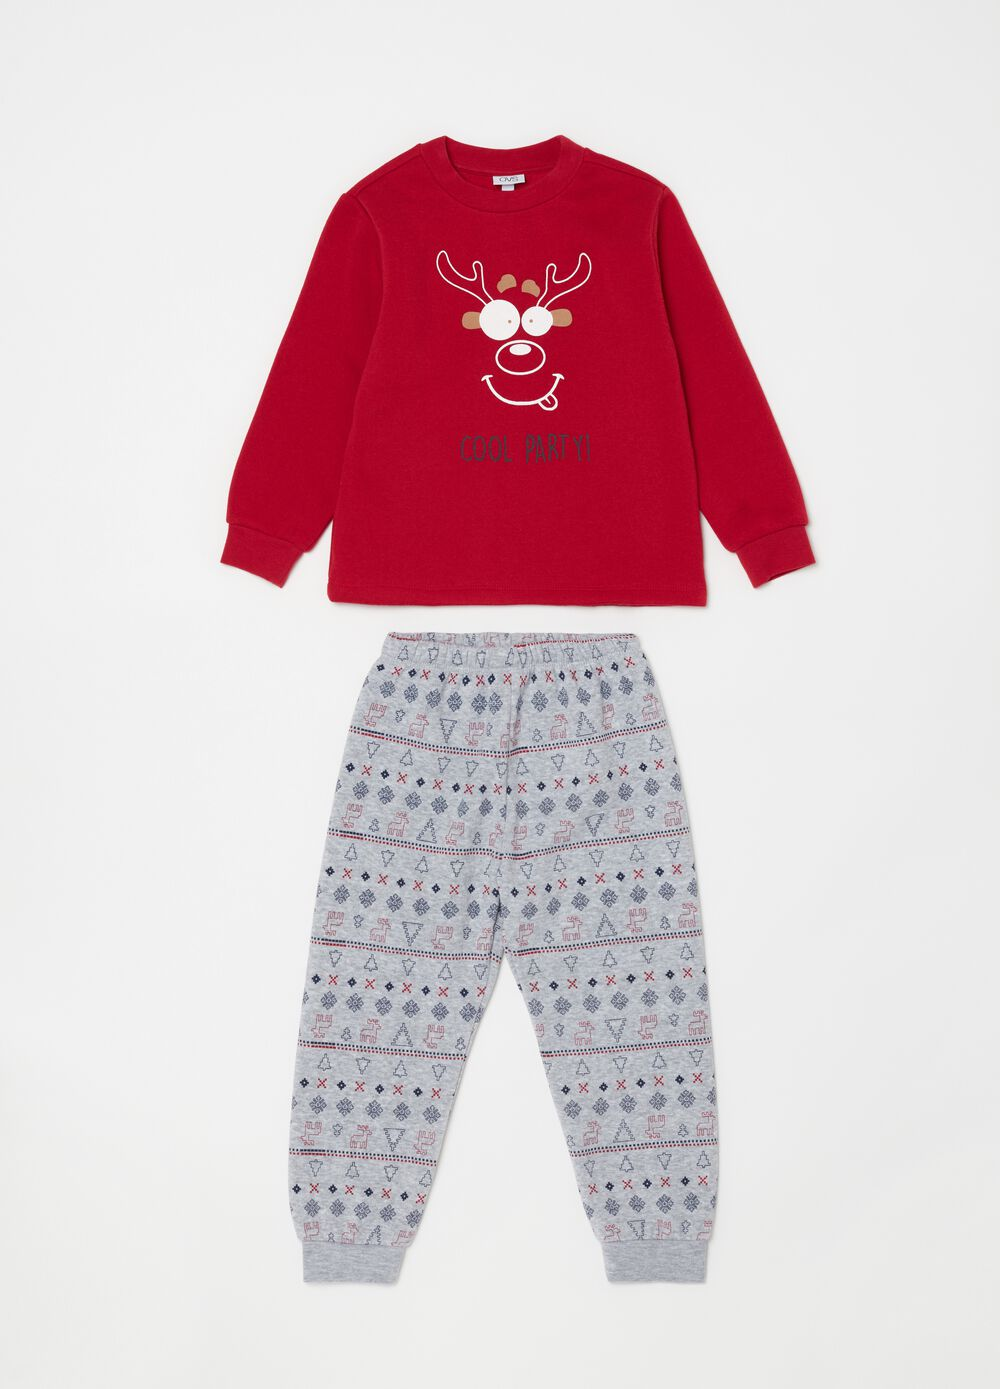 Long pyjamas with Christmas print and pattern